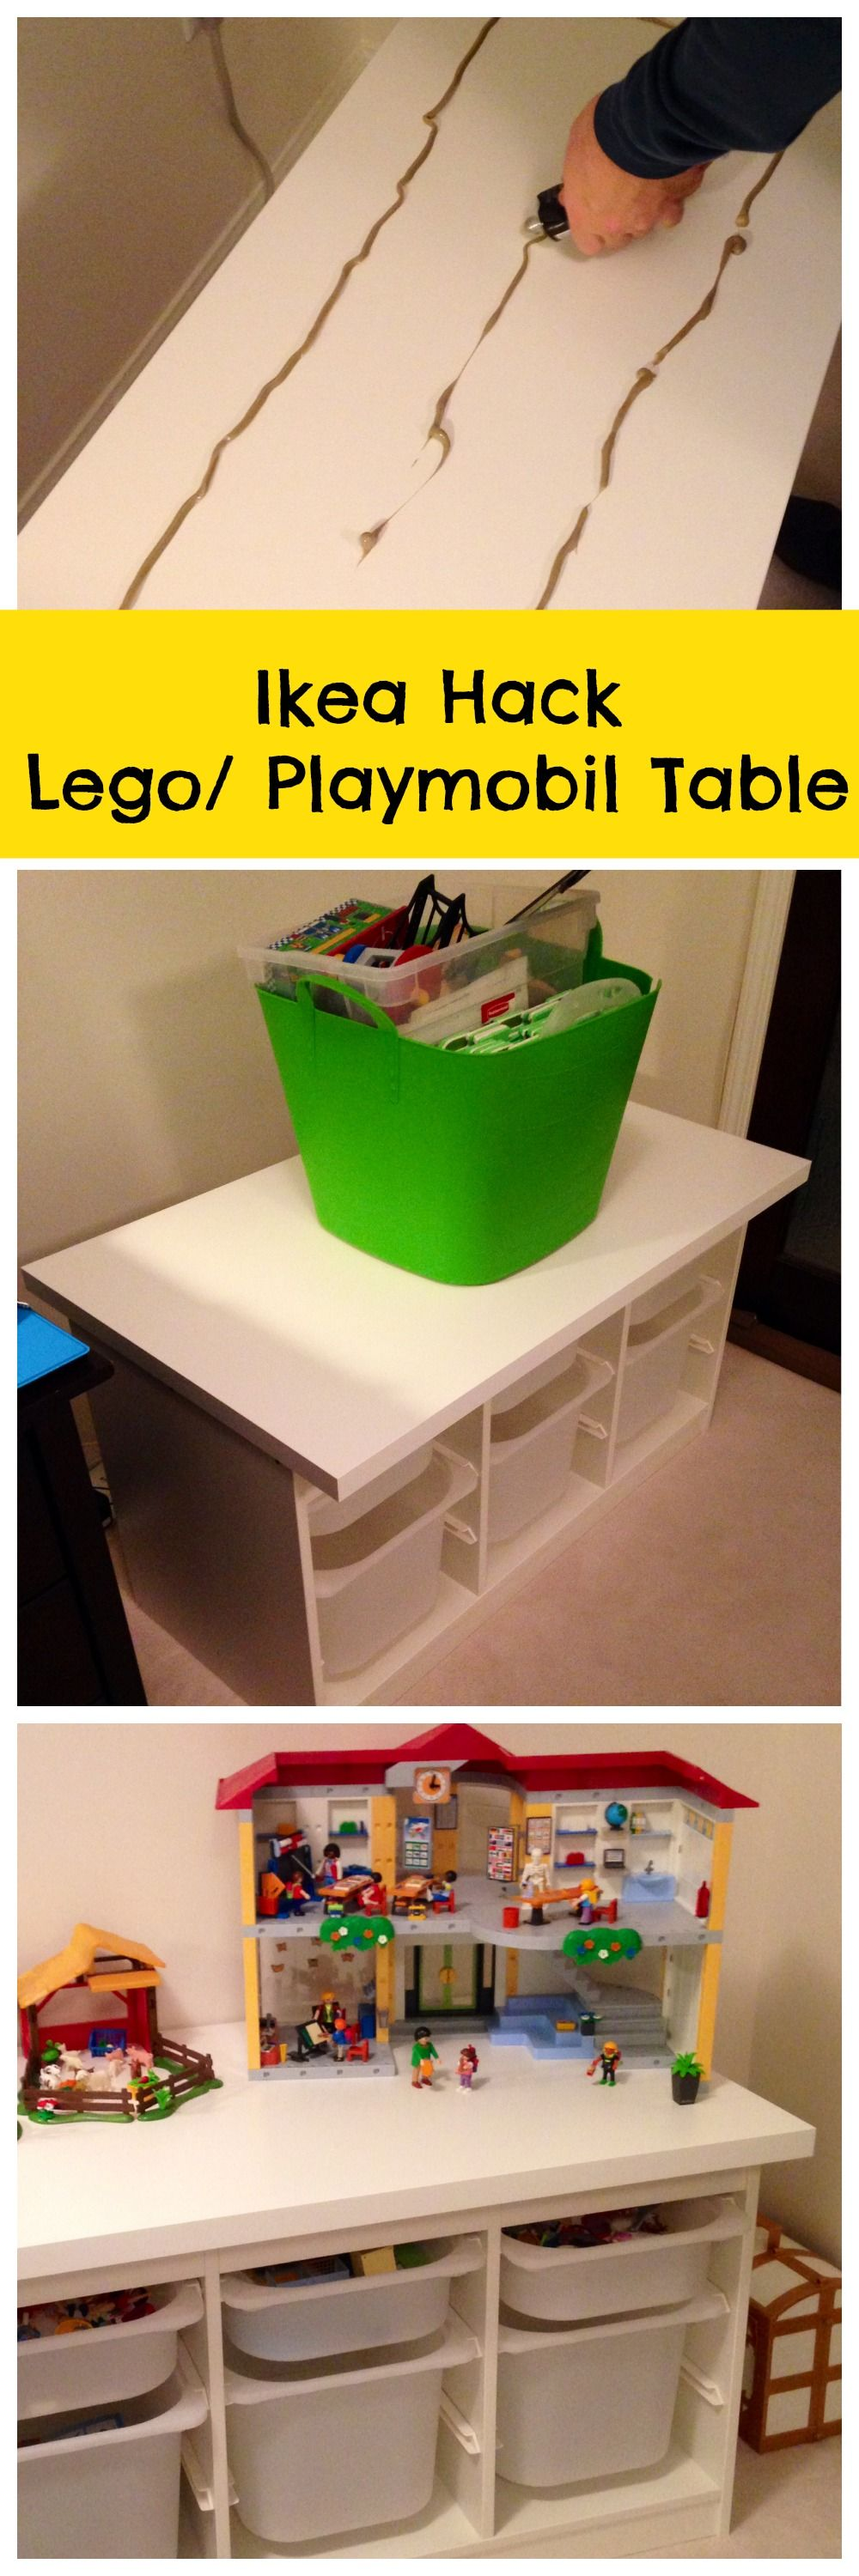 DIY Ikea Lego Table aka The Super Secret Project The Day the Glue